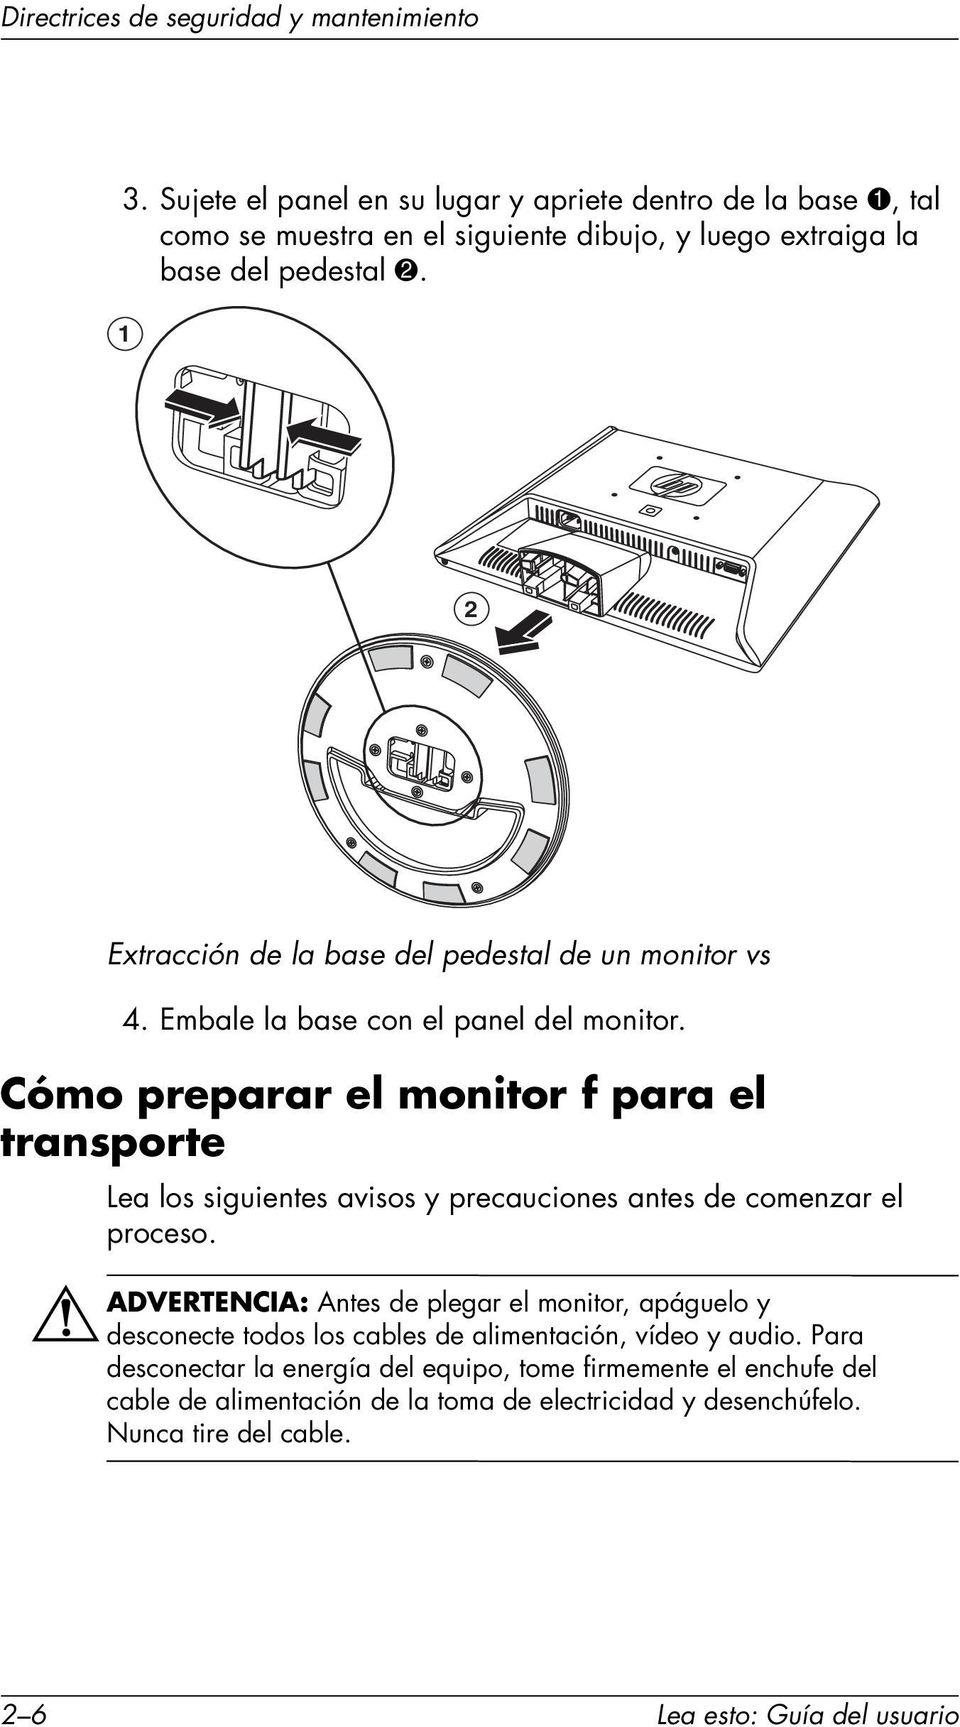 1 2 Extracción de la base del pedestal de un monitor vs 4. Embale la base con el panel del monitor.